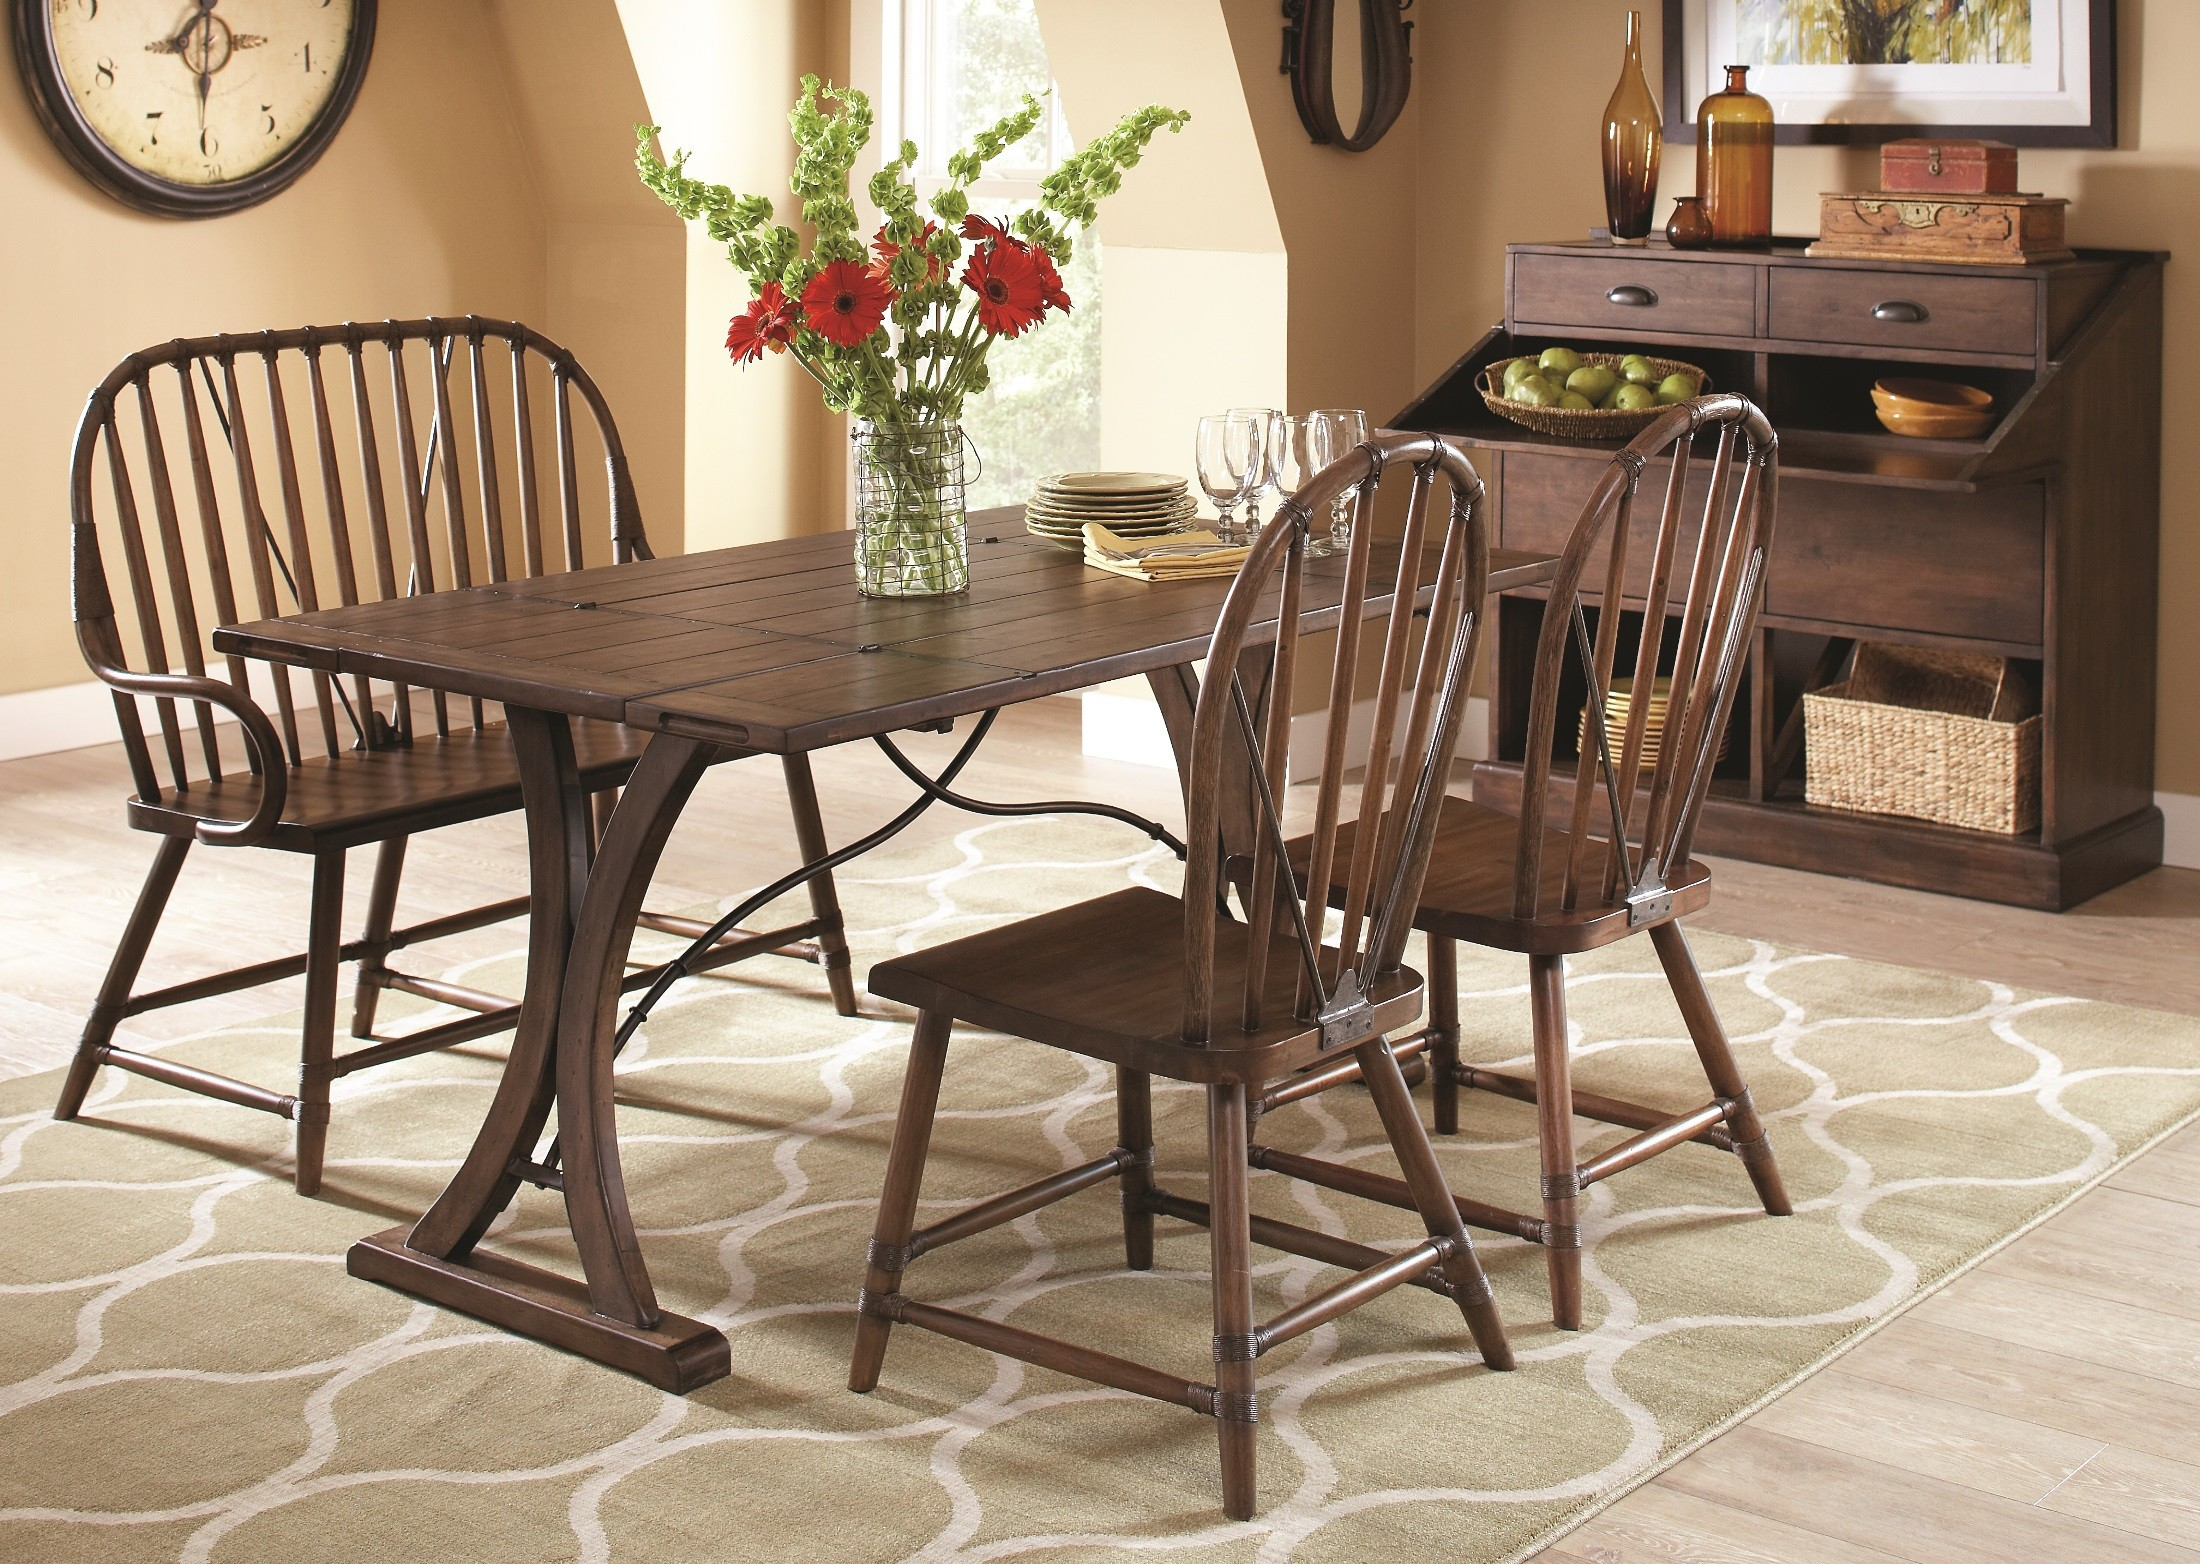 New Bedford Folding Top Dining Room Set From Largo (d682. Josephine Desk World Market. Desk Blotter Pad. Ako Phone Number Help Desk. Cycle Desk. Desk Balls. Kids Office Desk. Indoor Cafe Table And Chairs. Pool Table Moving Service